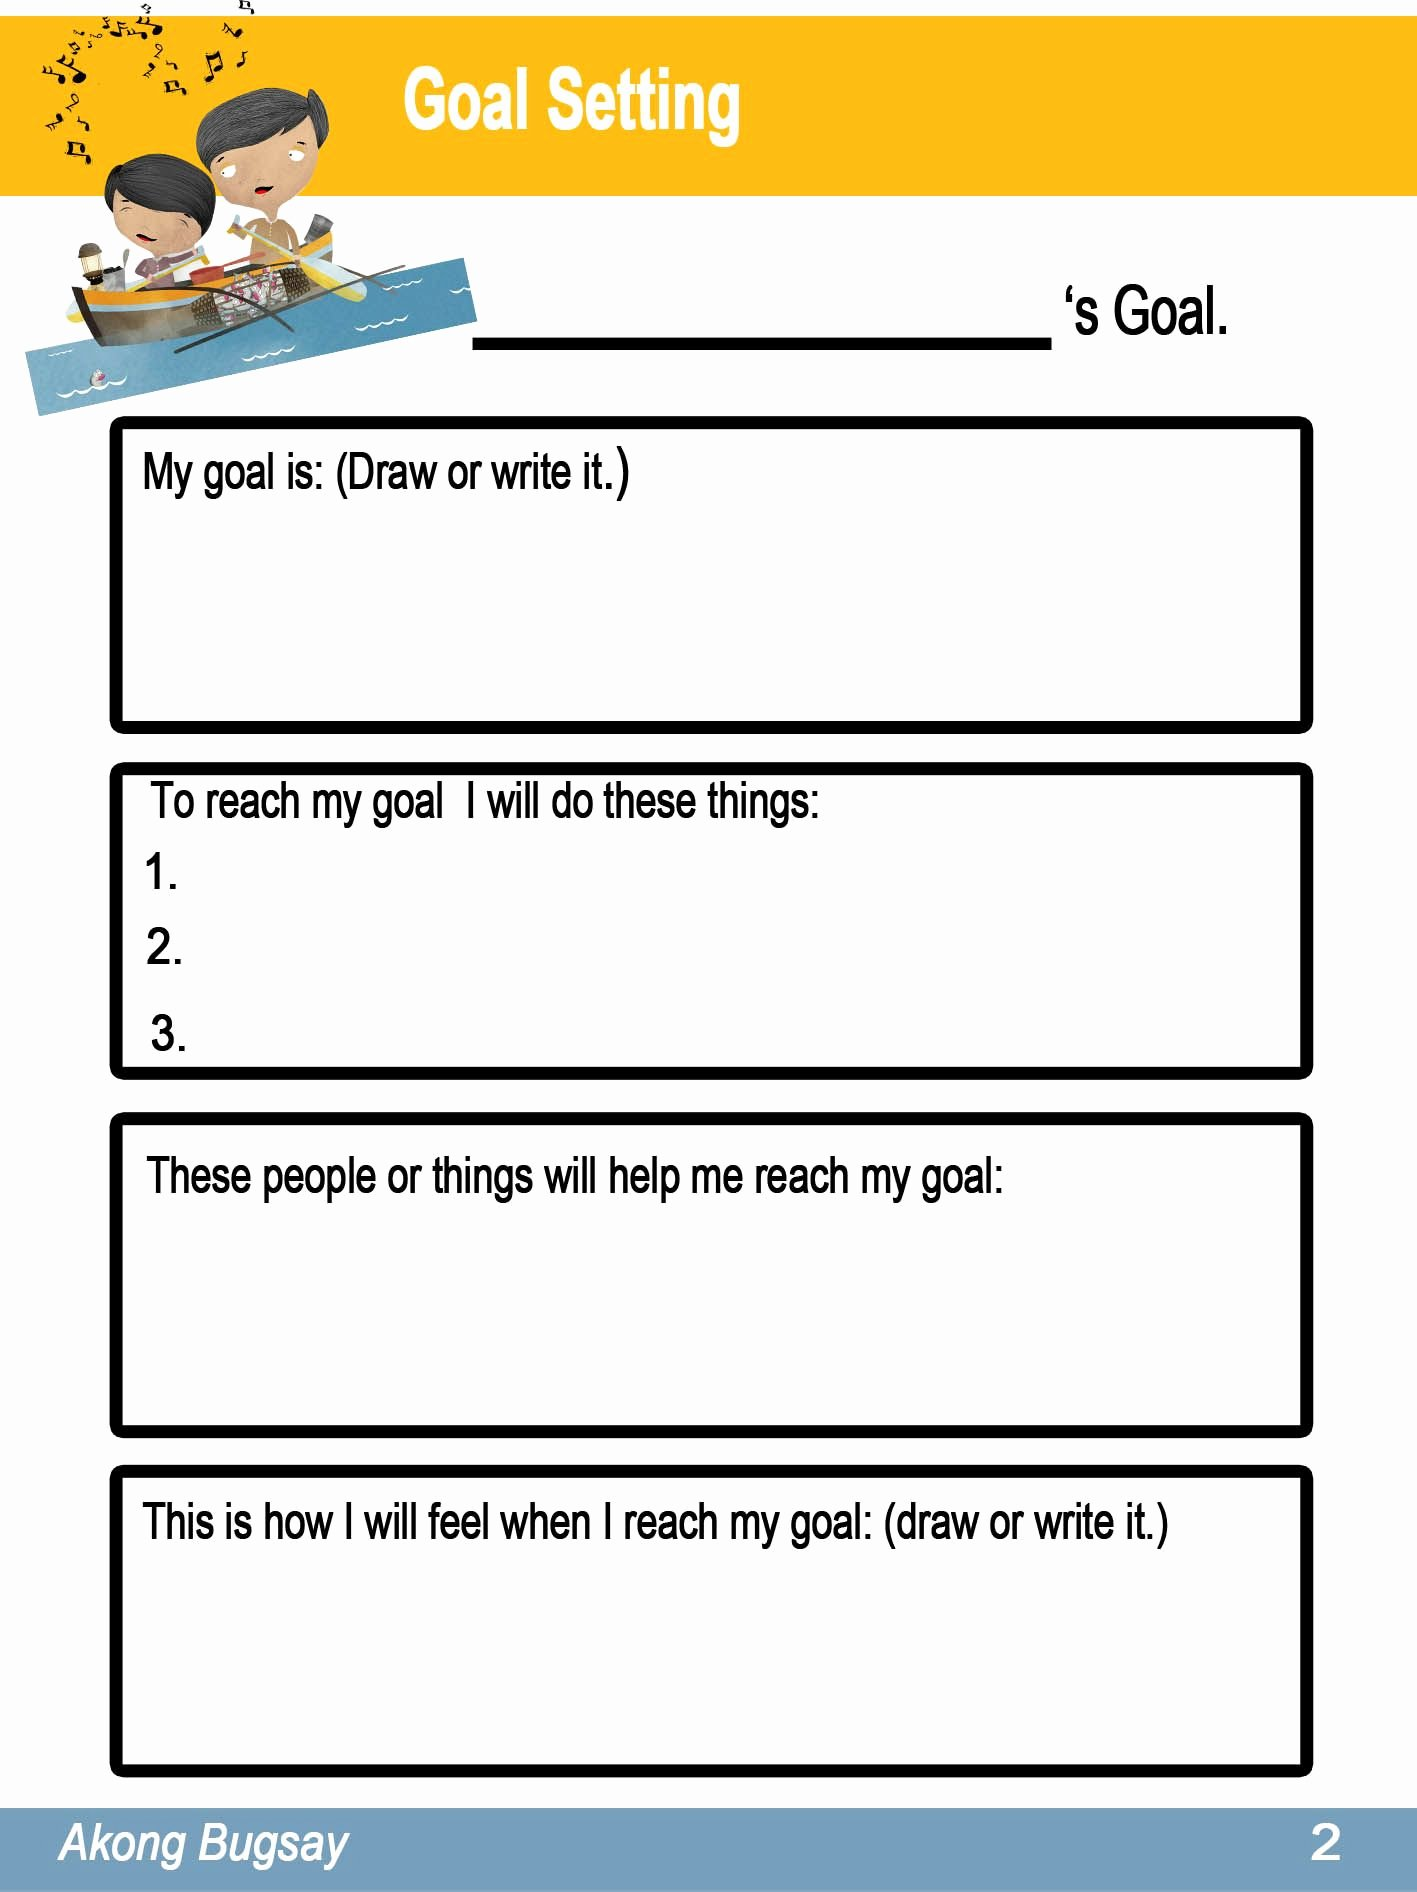 Goal Setting Template New Goalsetting Copy 1 417×1 892 Pixels